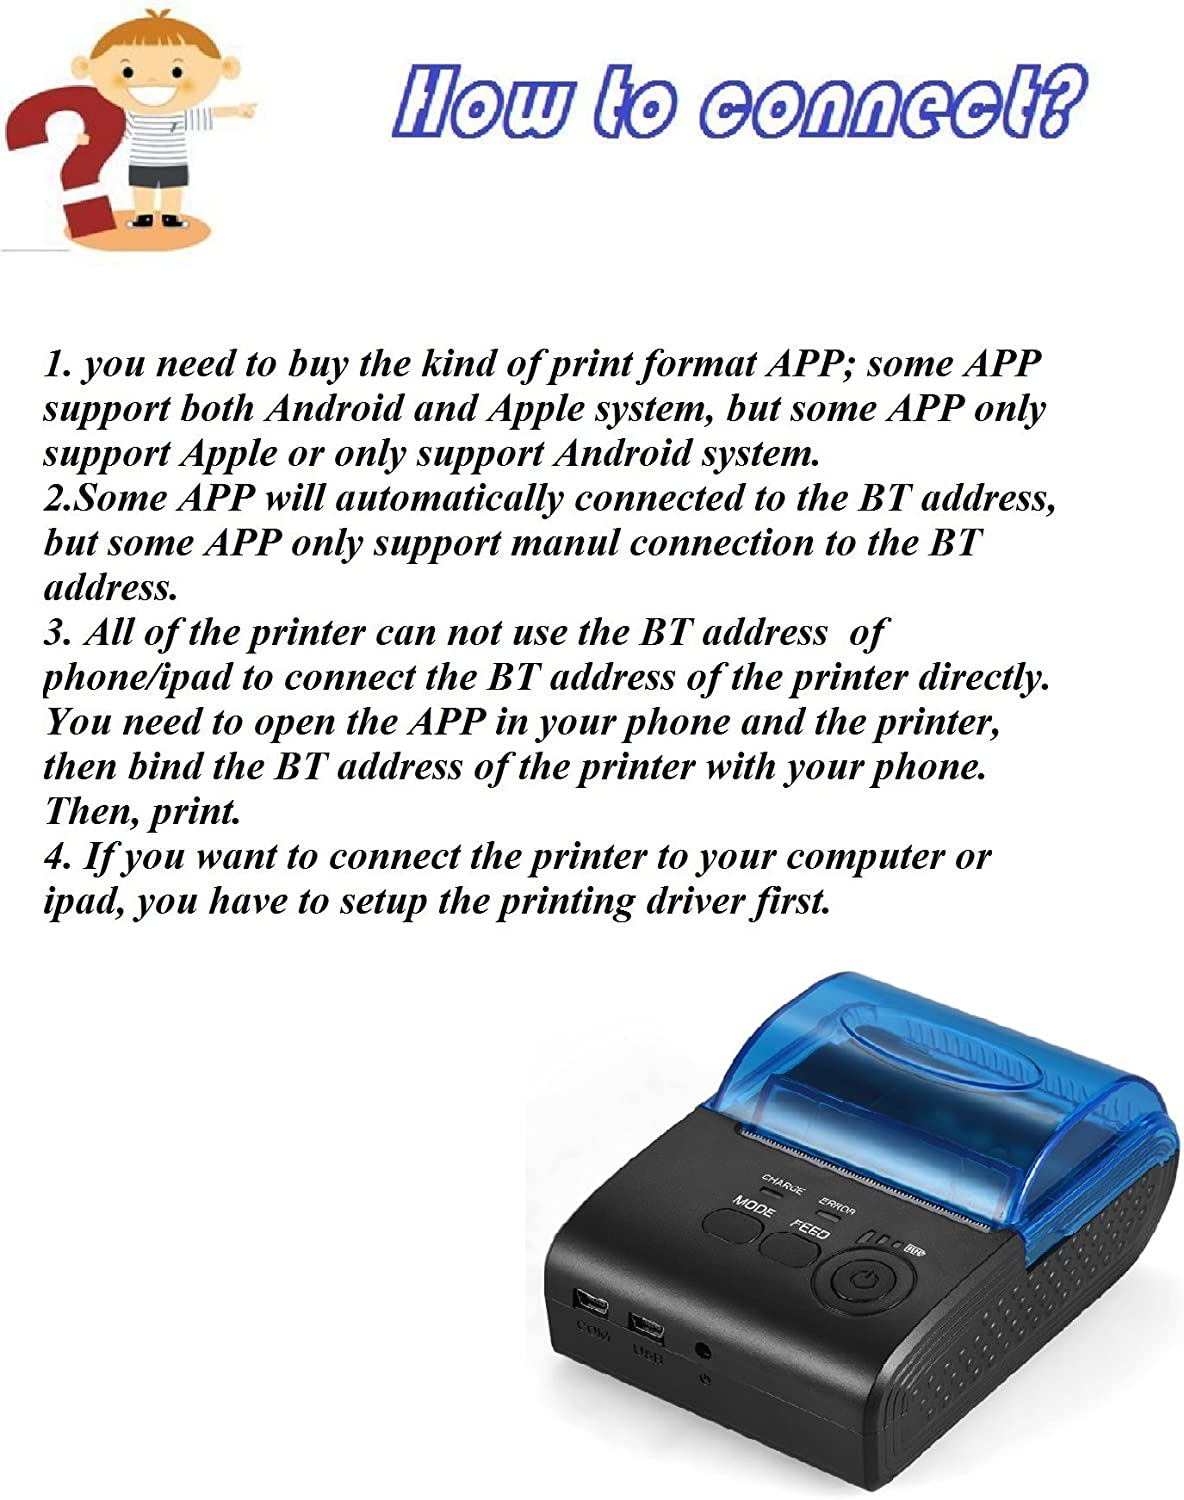 Aibecy 58mm Thermal Receipt Printer Portable Mini Wireless Thermal Printer USB Receipt Bill Ticket POS Printing for iOS Android Windows Compatible ...